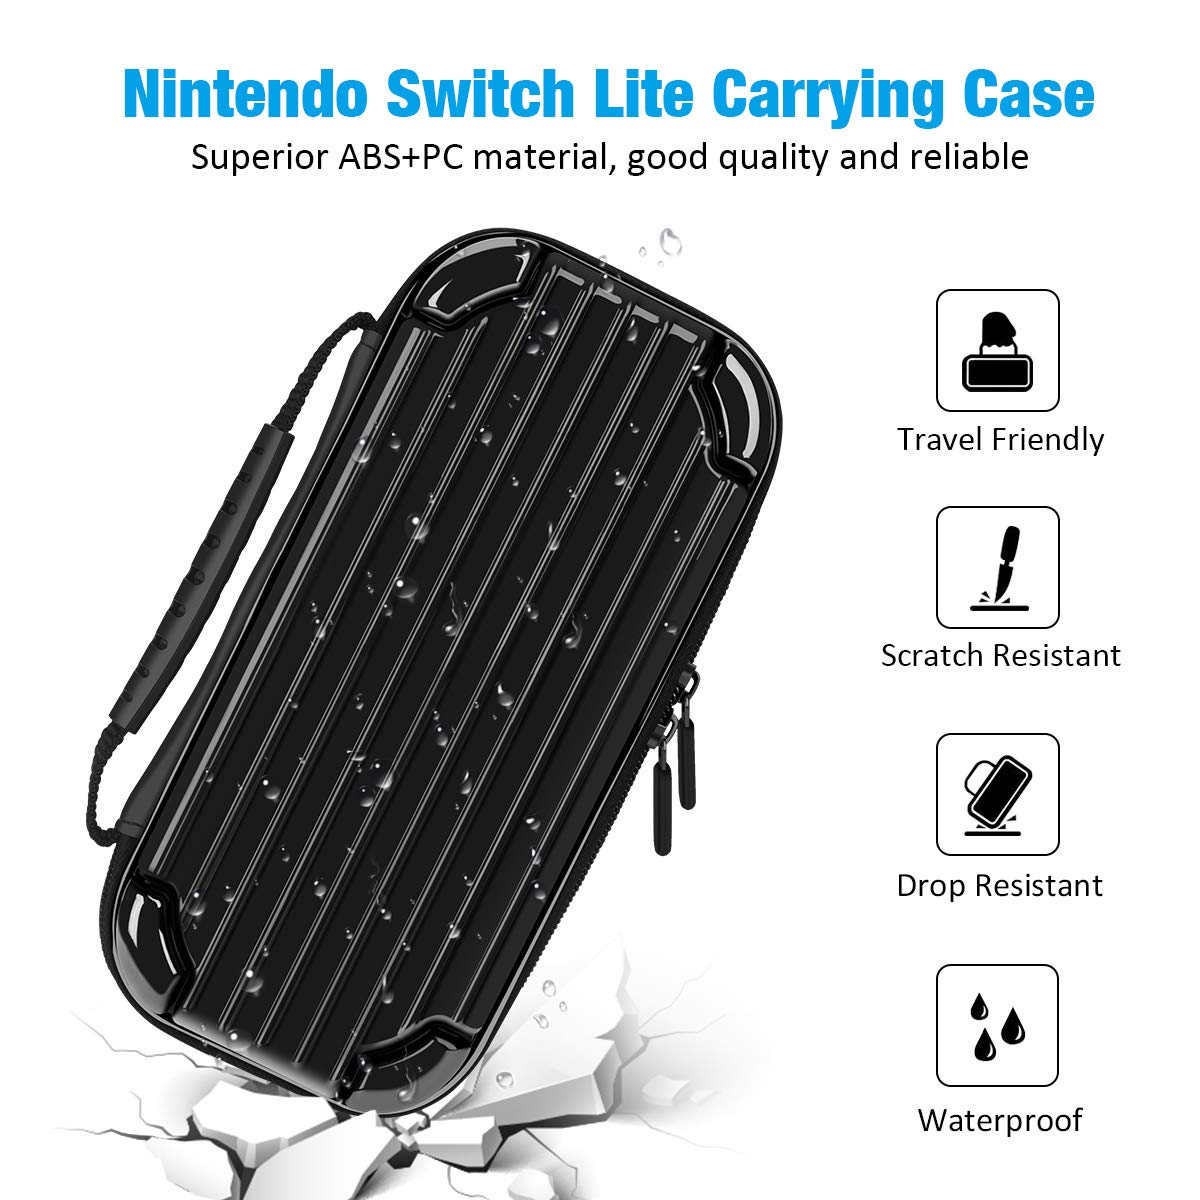 Carrying Case for Nintendo Switch Lite, Y Team Switch Lite Case with 10 Game Cartridge Storage Holders and 1 Tempered Screen Protector for Nintendo Switch Lite Console and Accessories (Black)